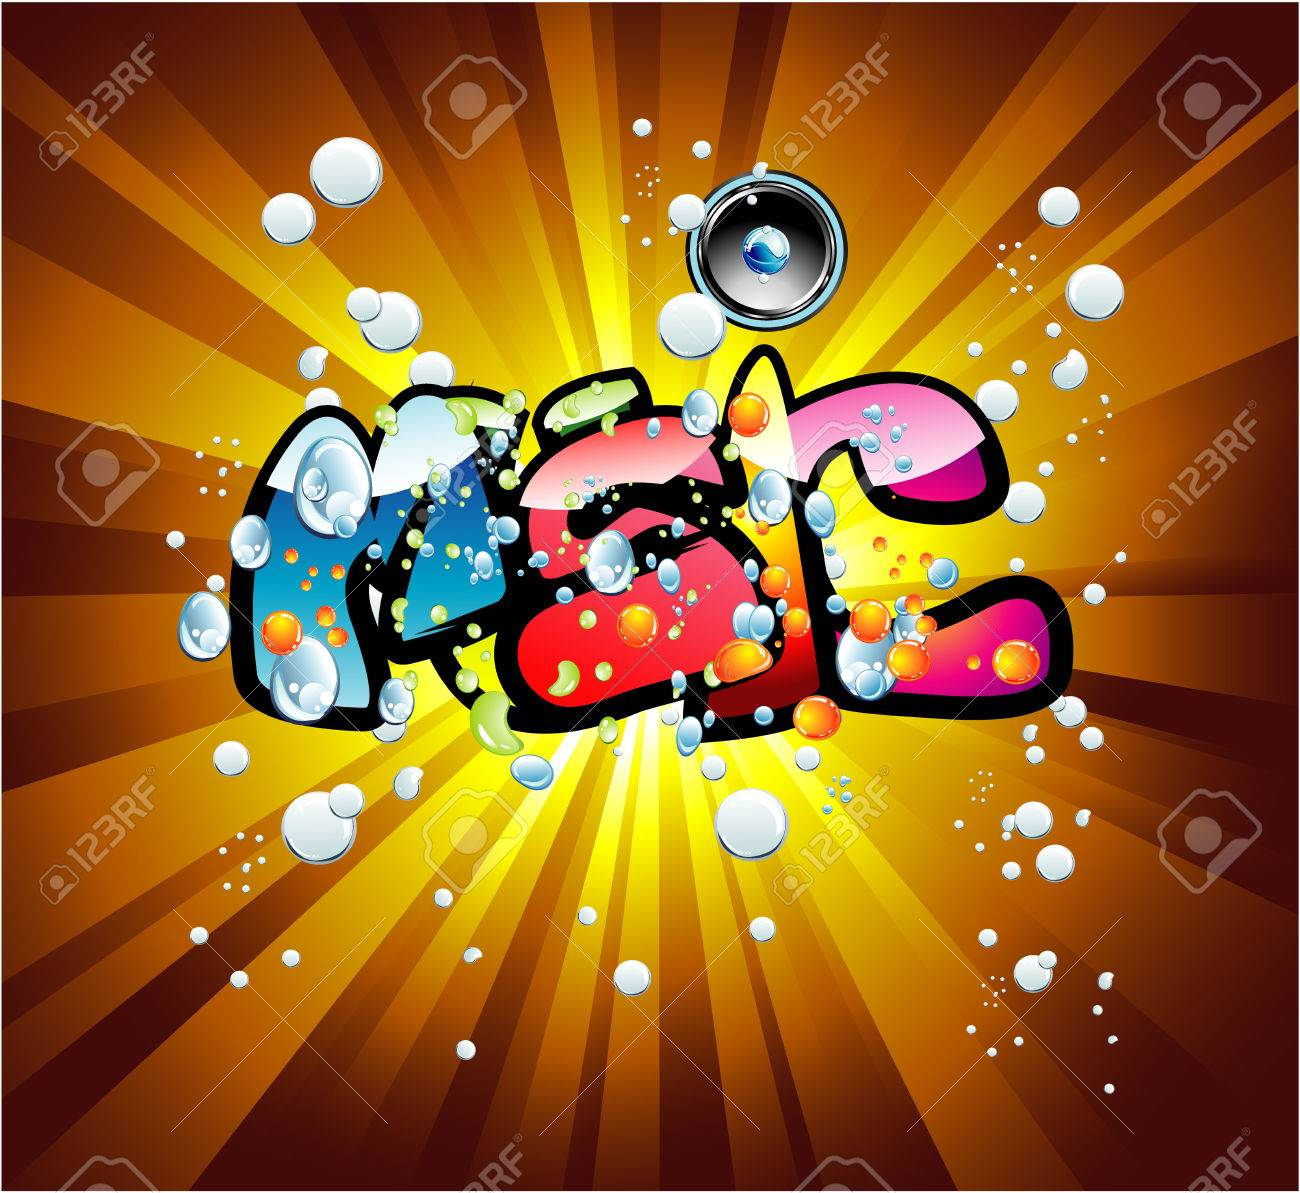 Abstract Colorful bubbles and music text background Stock Vector - 4897286